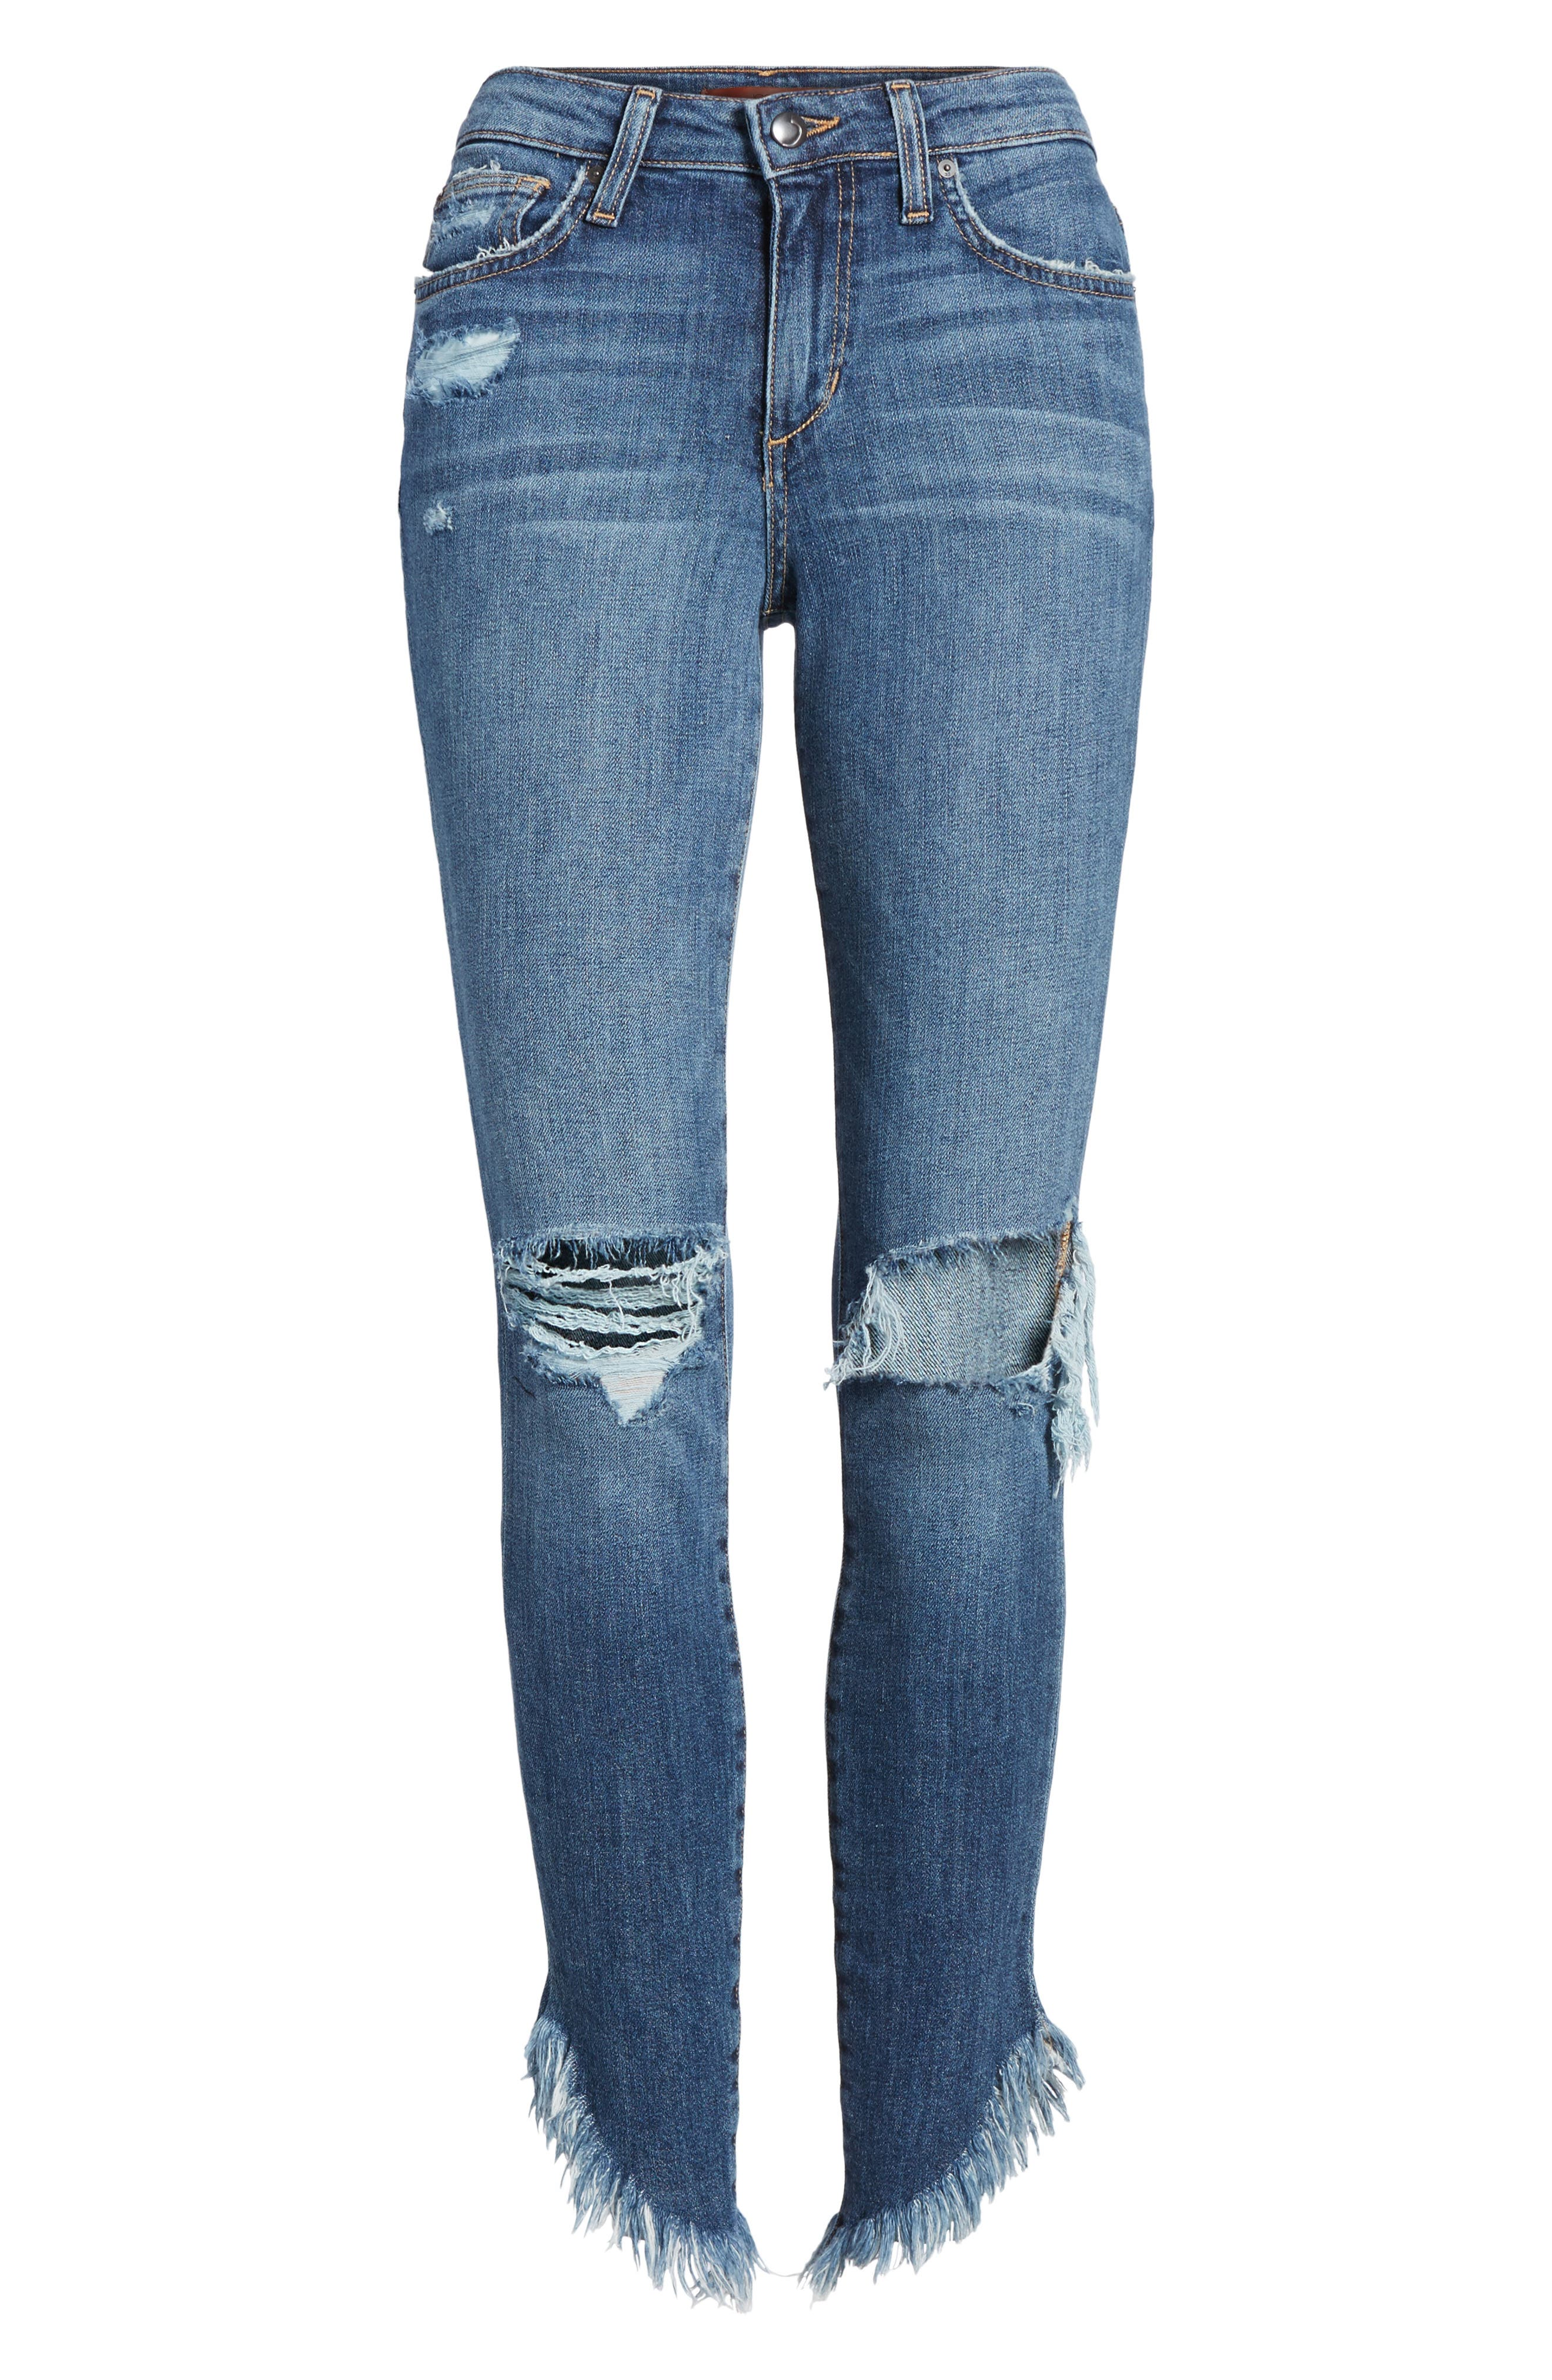 Icon Ankle Skinny Jeans,                             Alternate thumbnail 6, color,                             Aydin